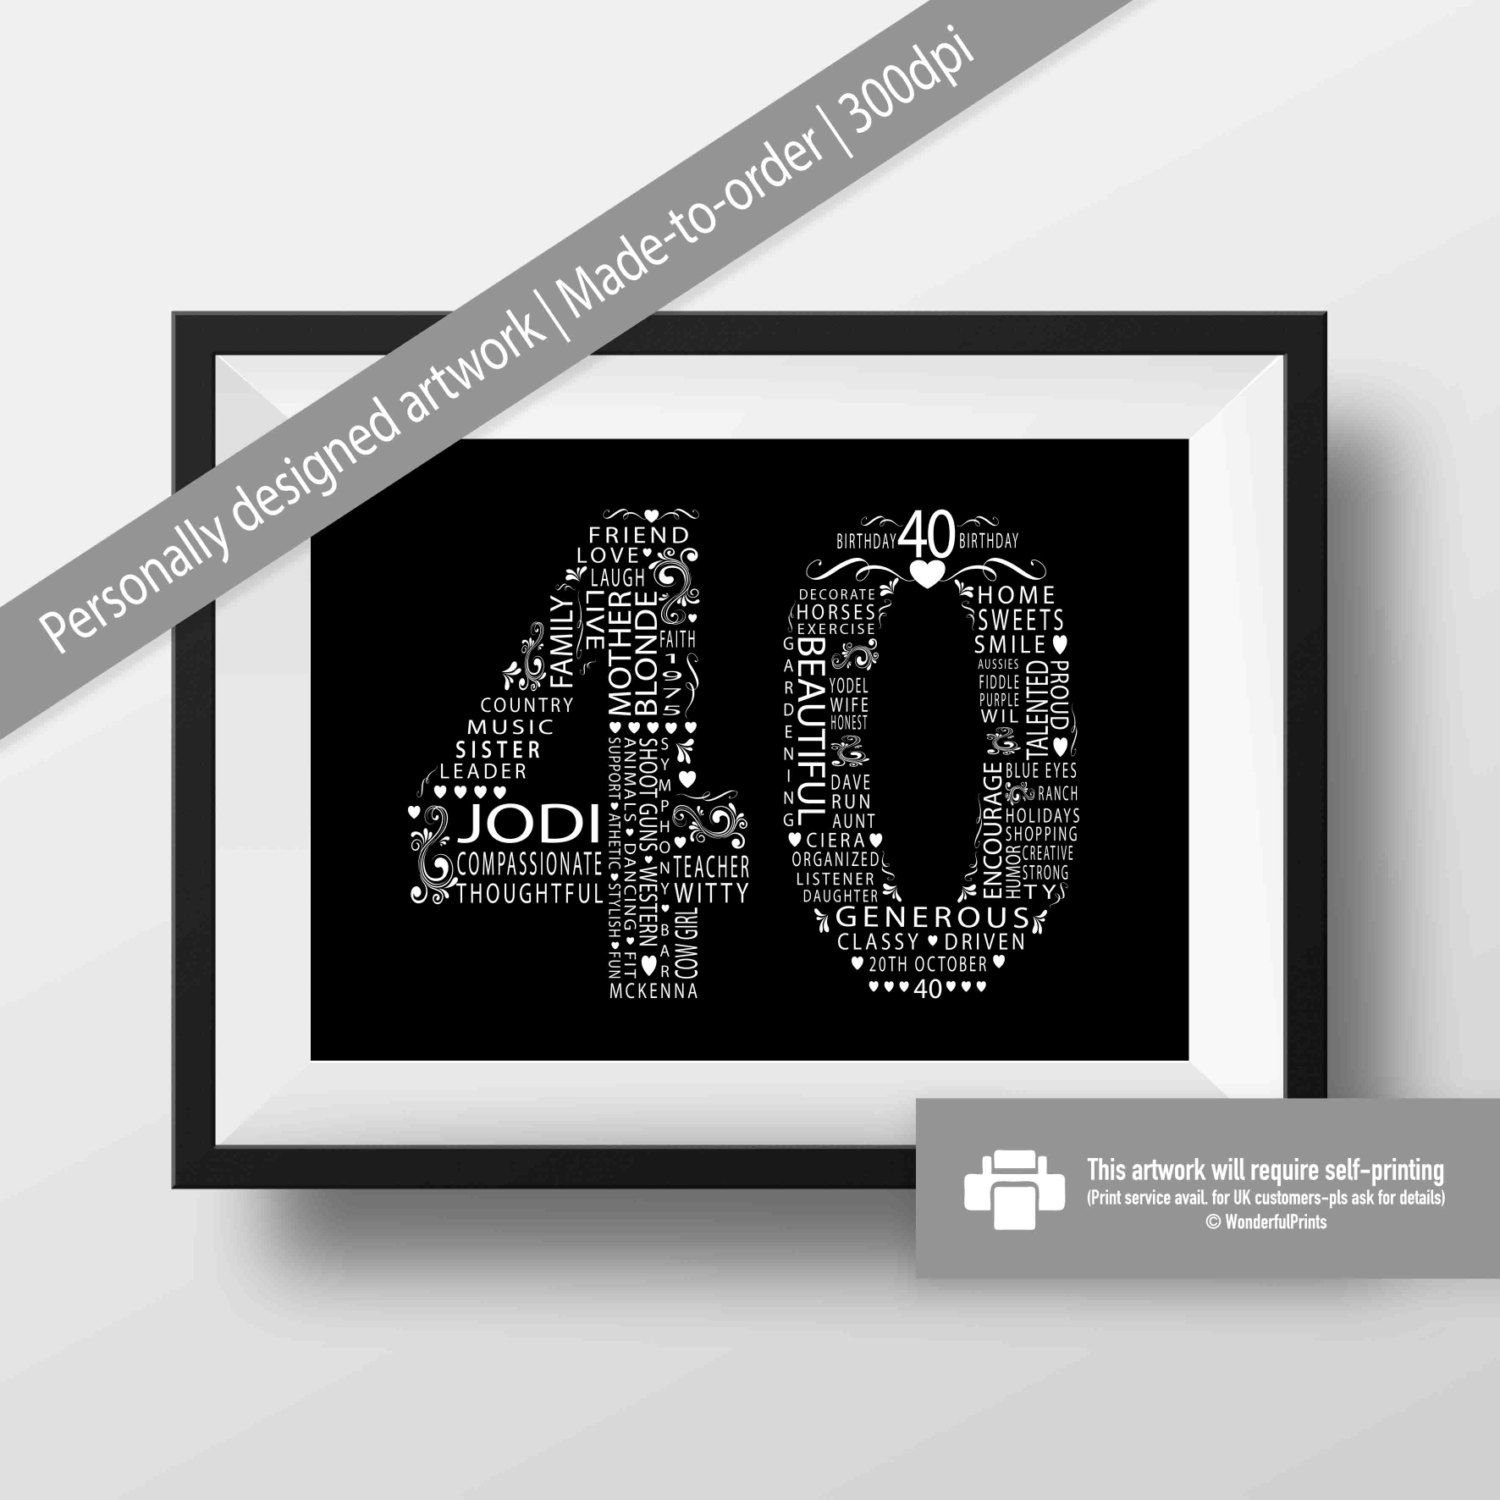 10 Stylish 40 Birthday Gift Ideas For Her image result for 40th birthday gift party ideas showers gifts 1